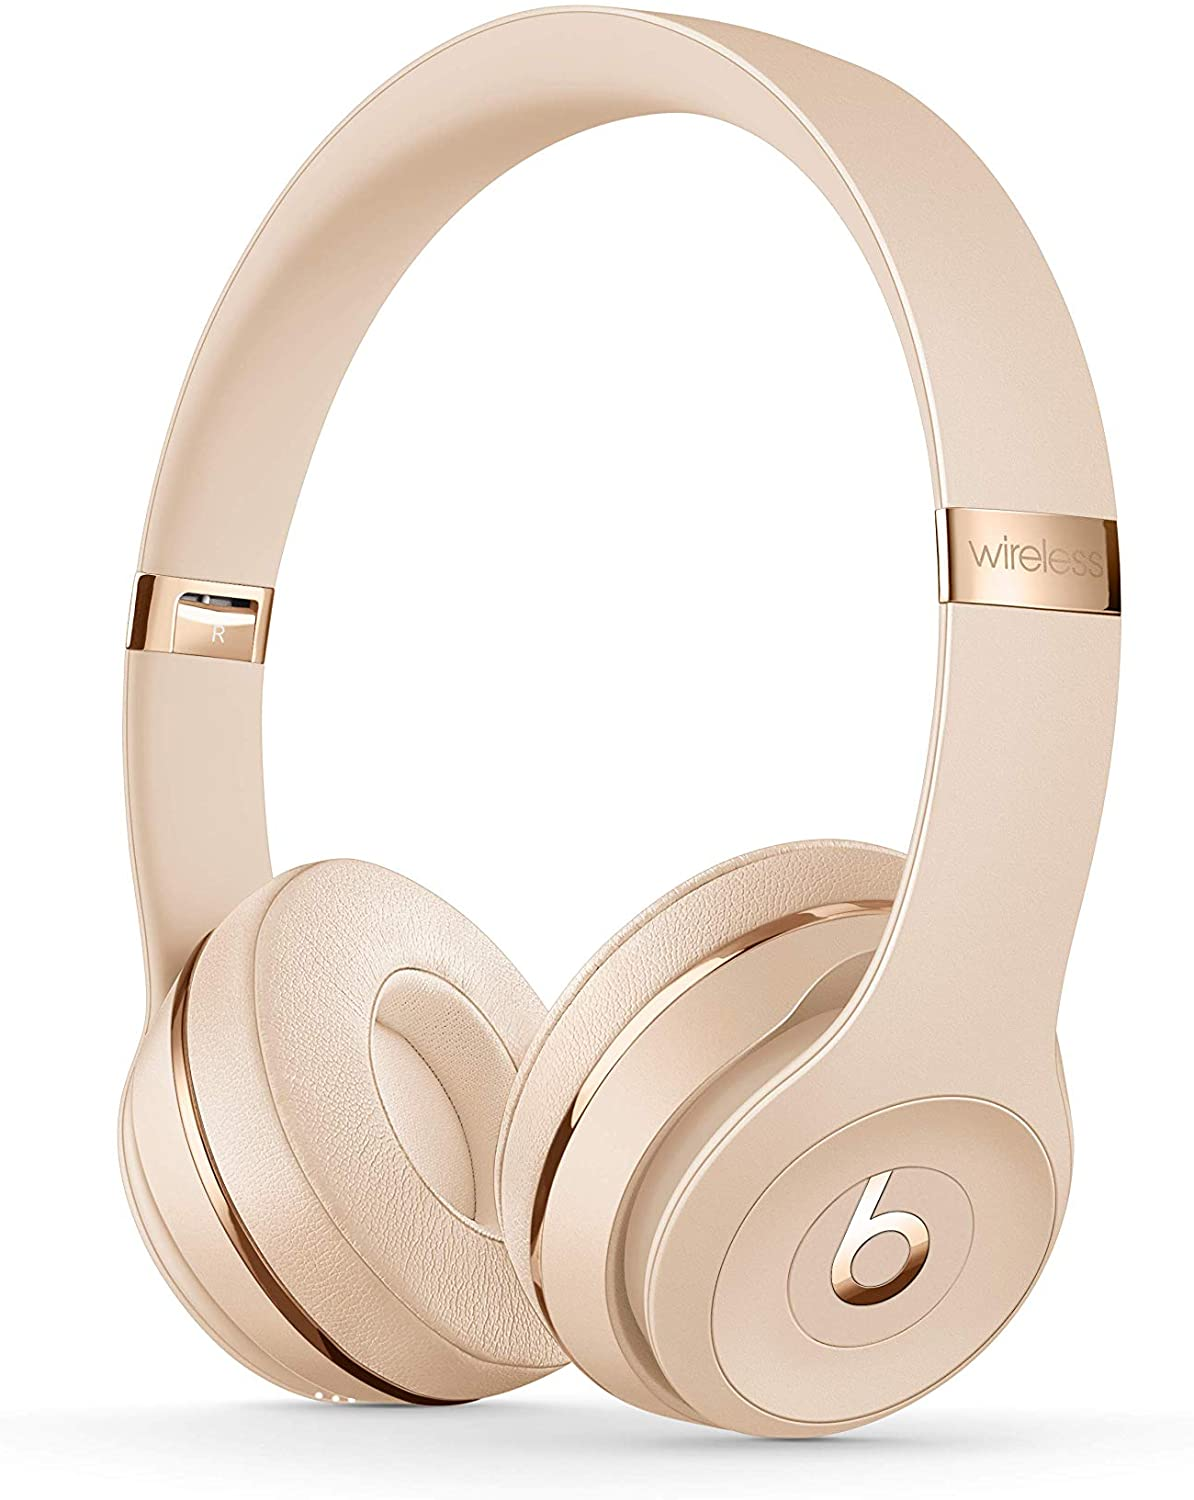 Amazon Com Beats Solo3 Wireless On Ear Headphones Apple W1 Headphone Chip Class 1 Bluetooth 40 Hours Of Listening Time Satin Gold Previous Model